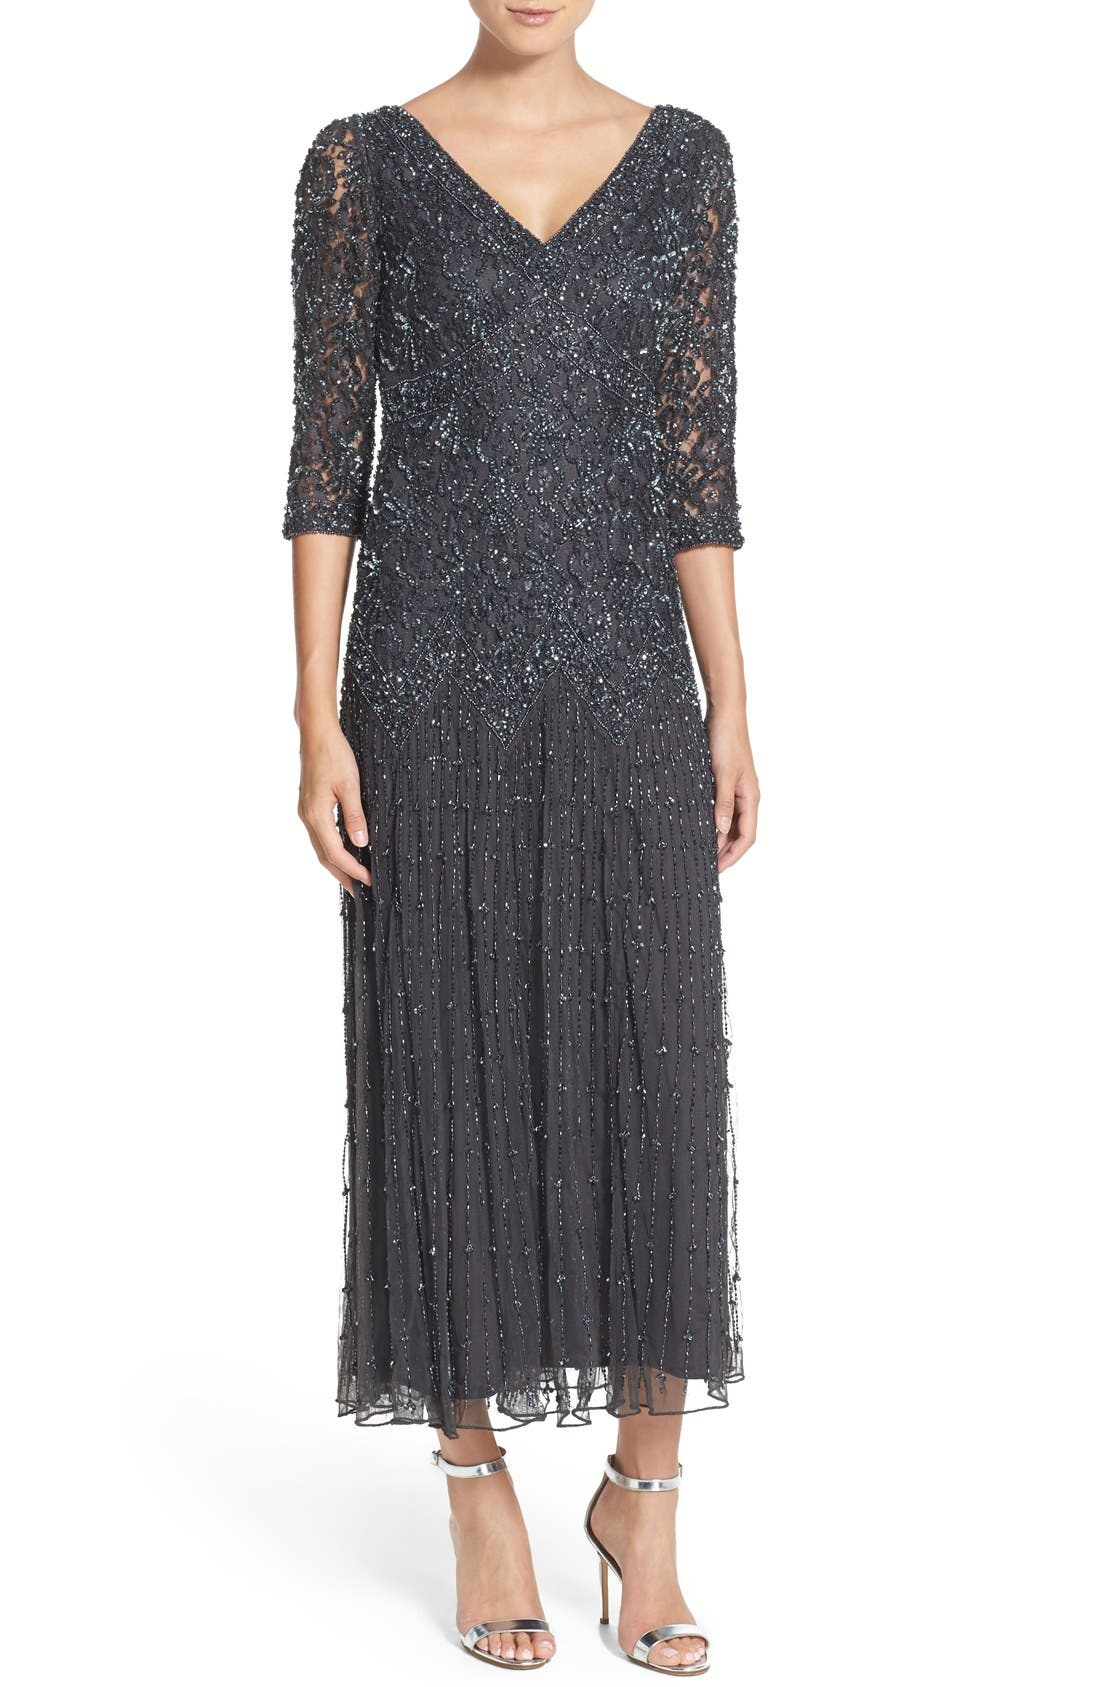 Pisarro Nights Beaded Mesh Dress (Regular & Petite)